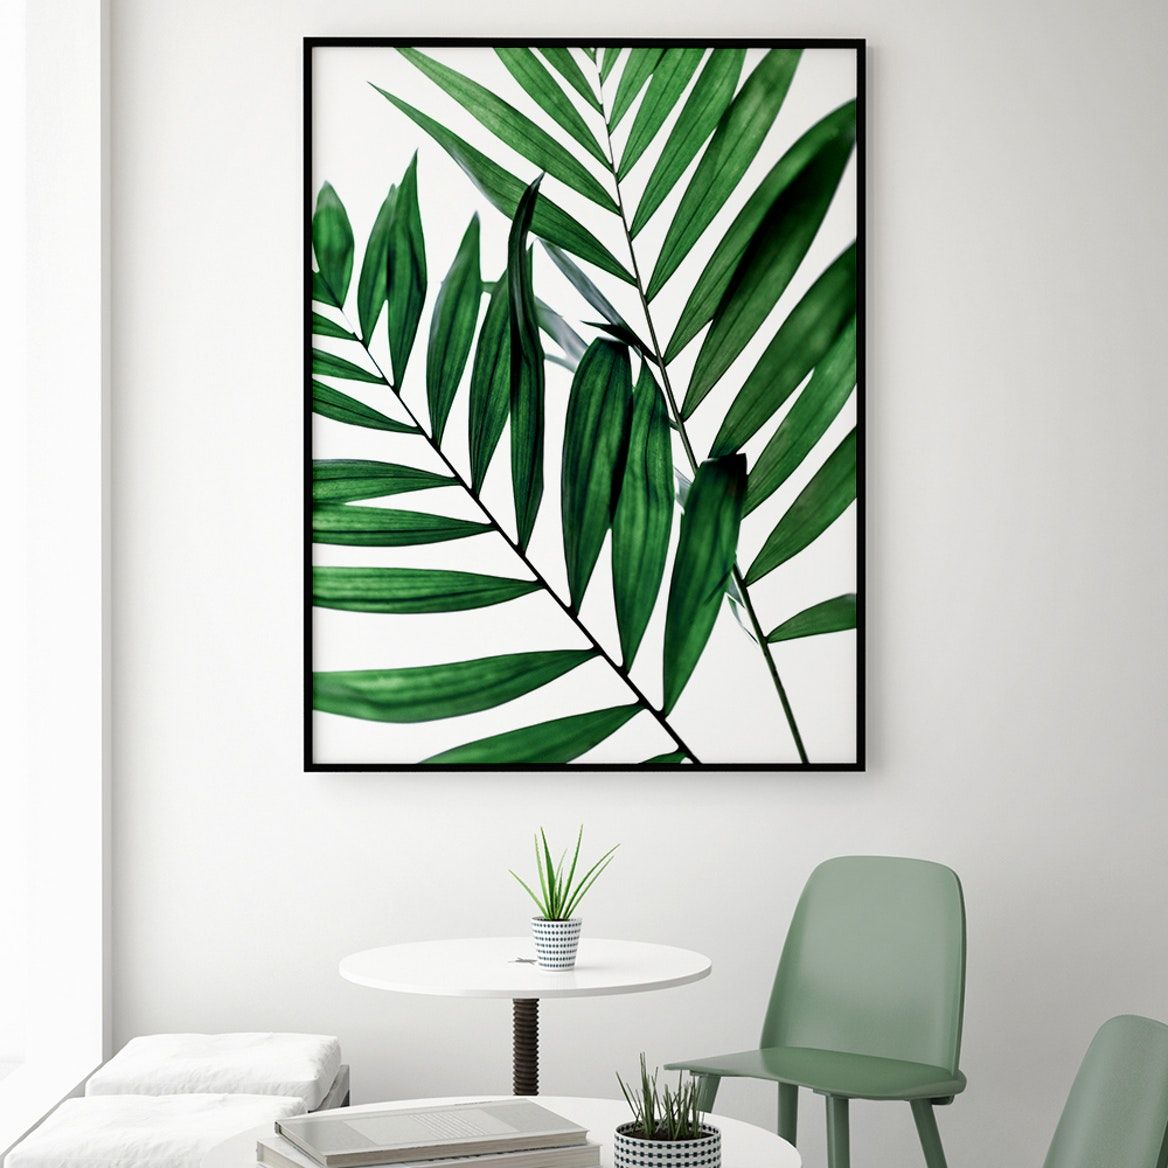 Leaves 5 Art Print In 2021 Tropical Wall Art Tropical Painting Plant Painting